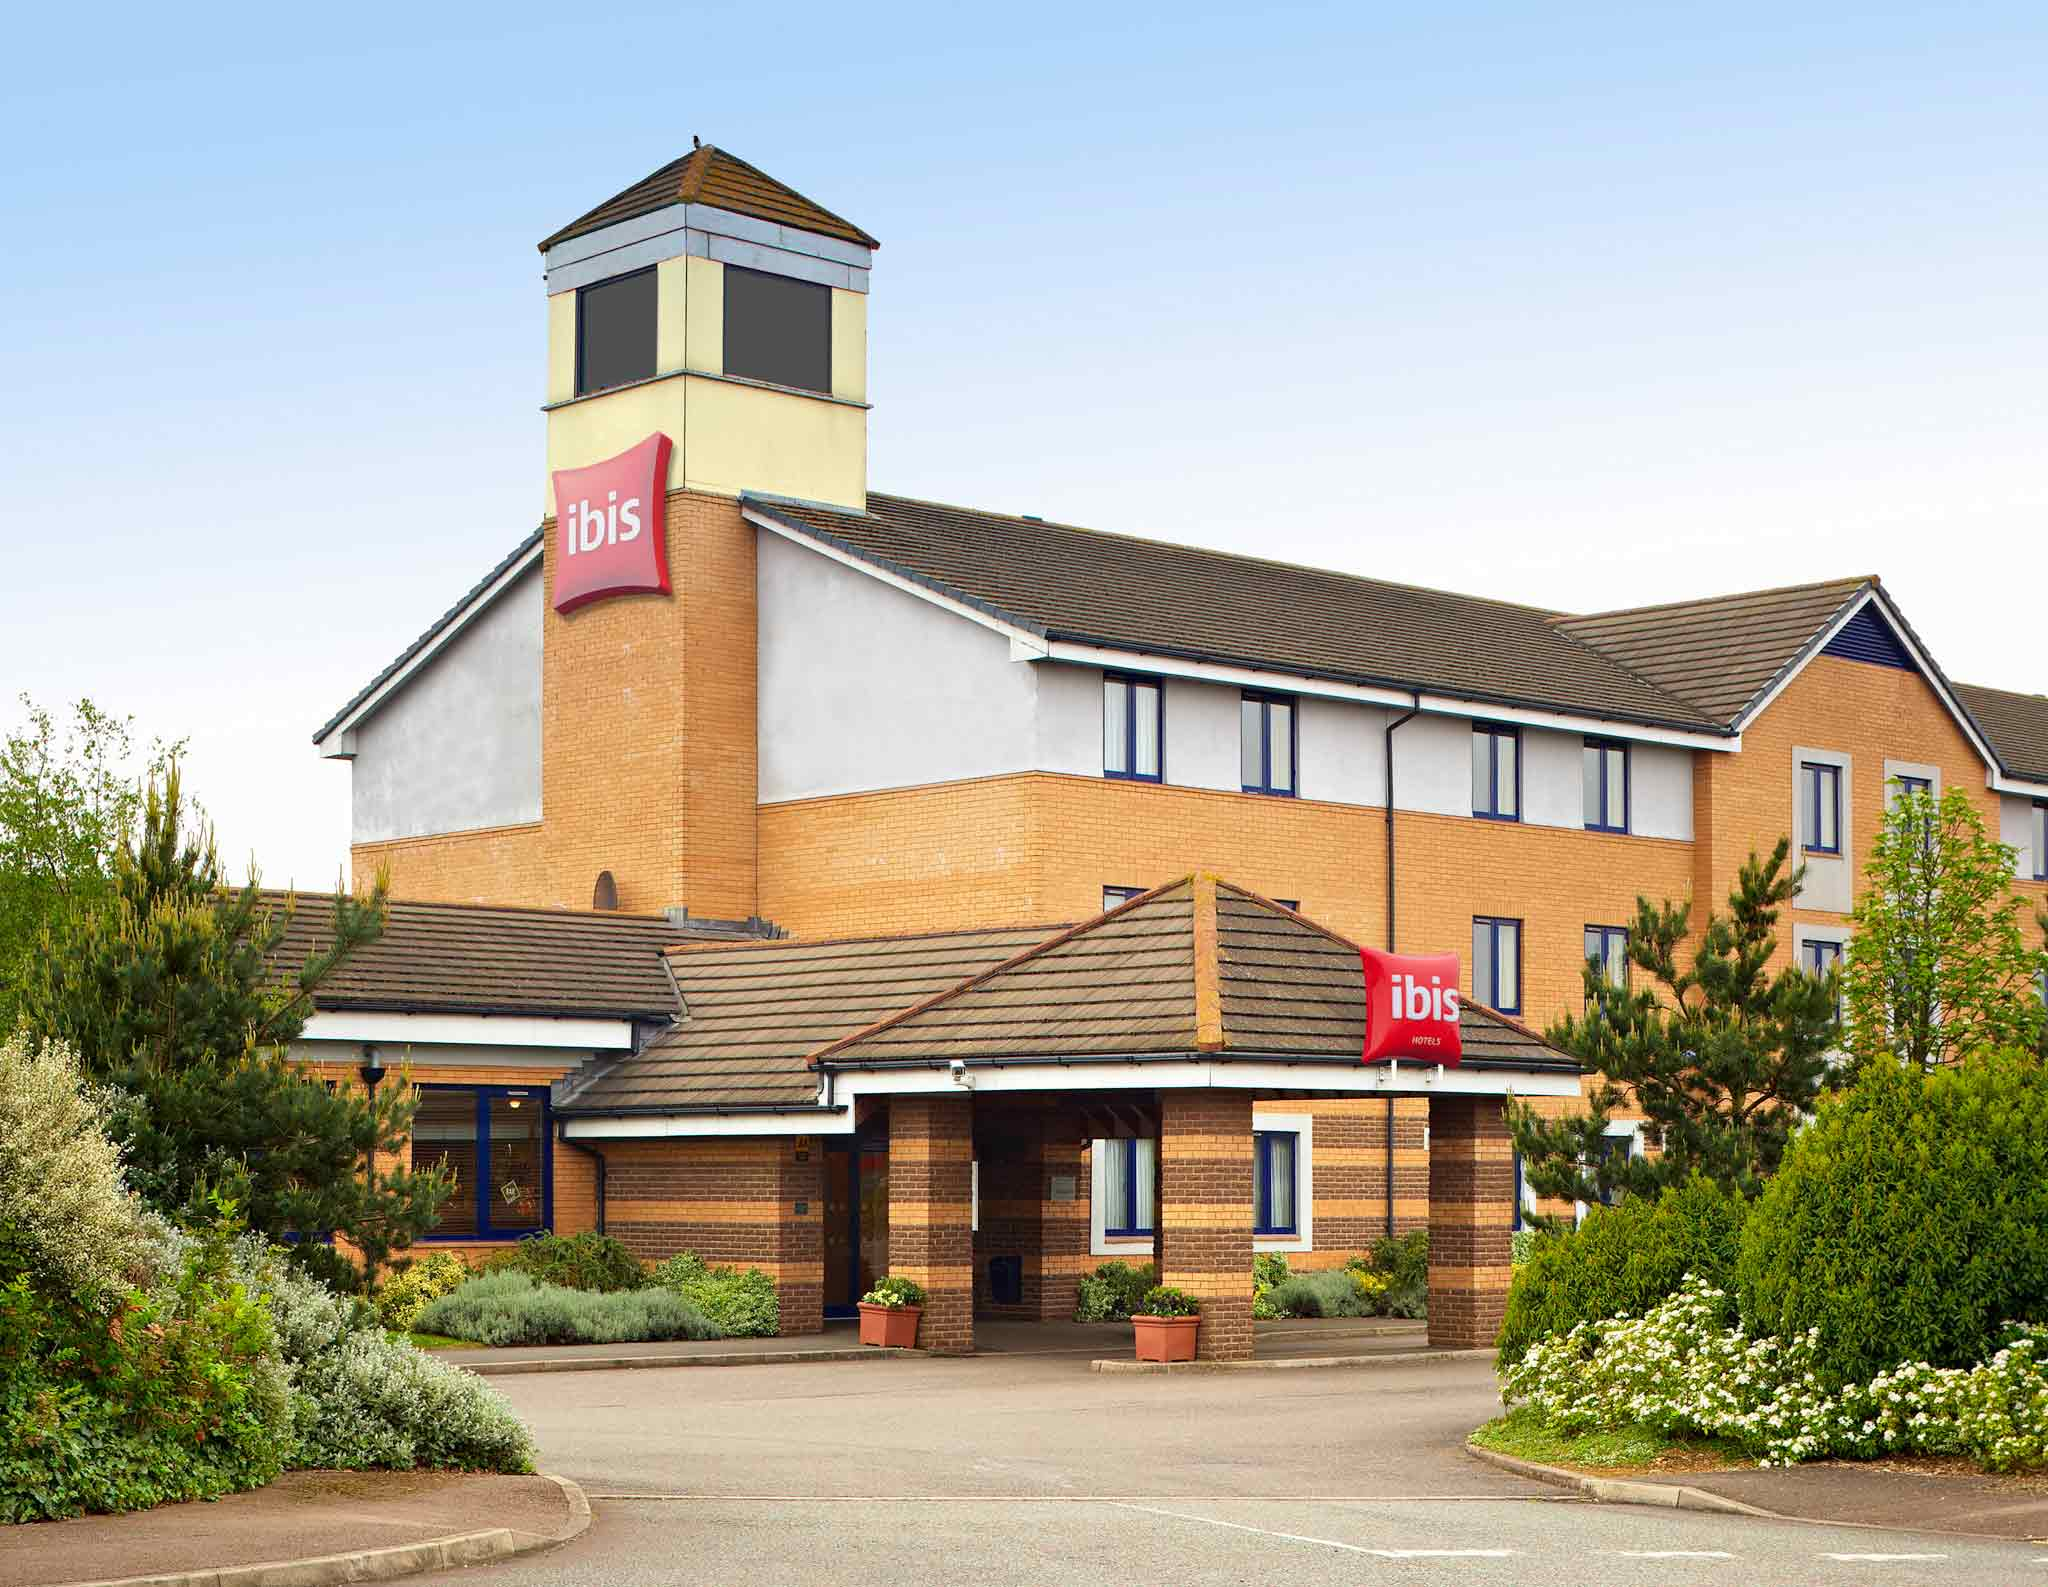 Hotel - ibis Wellingborough